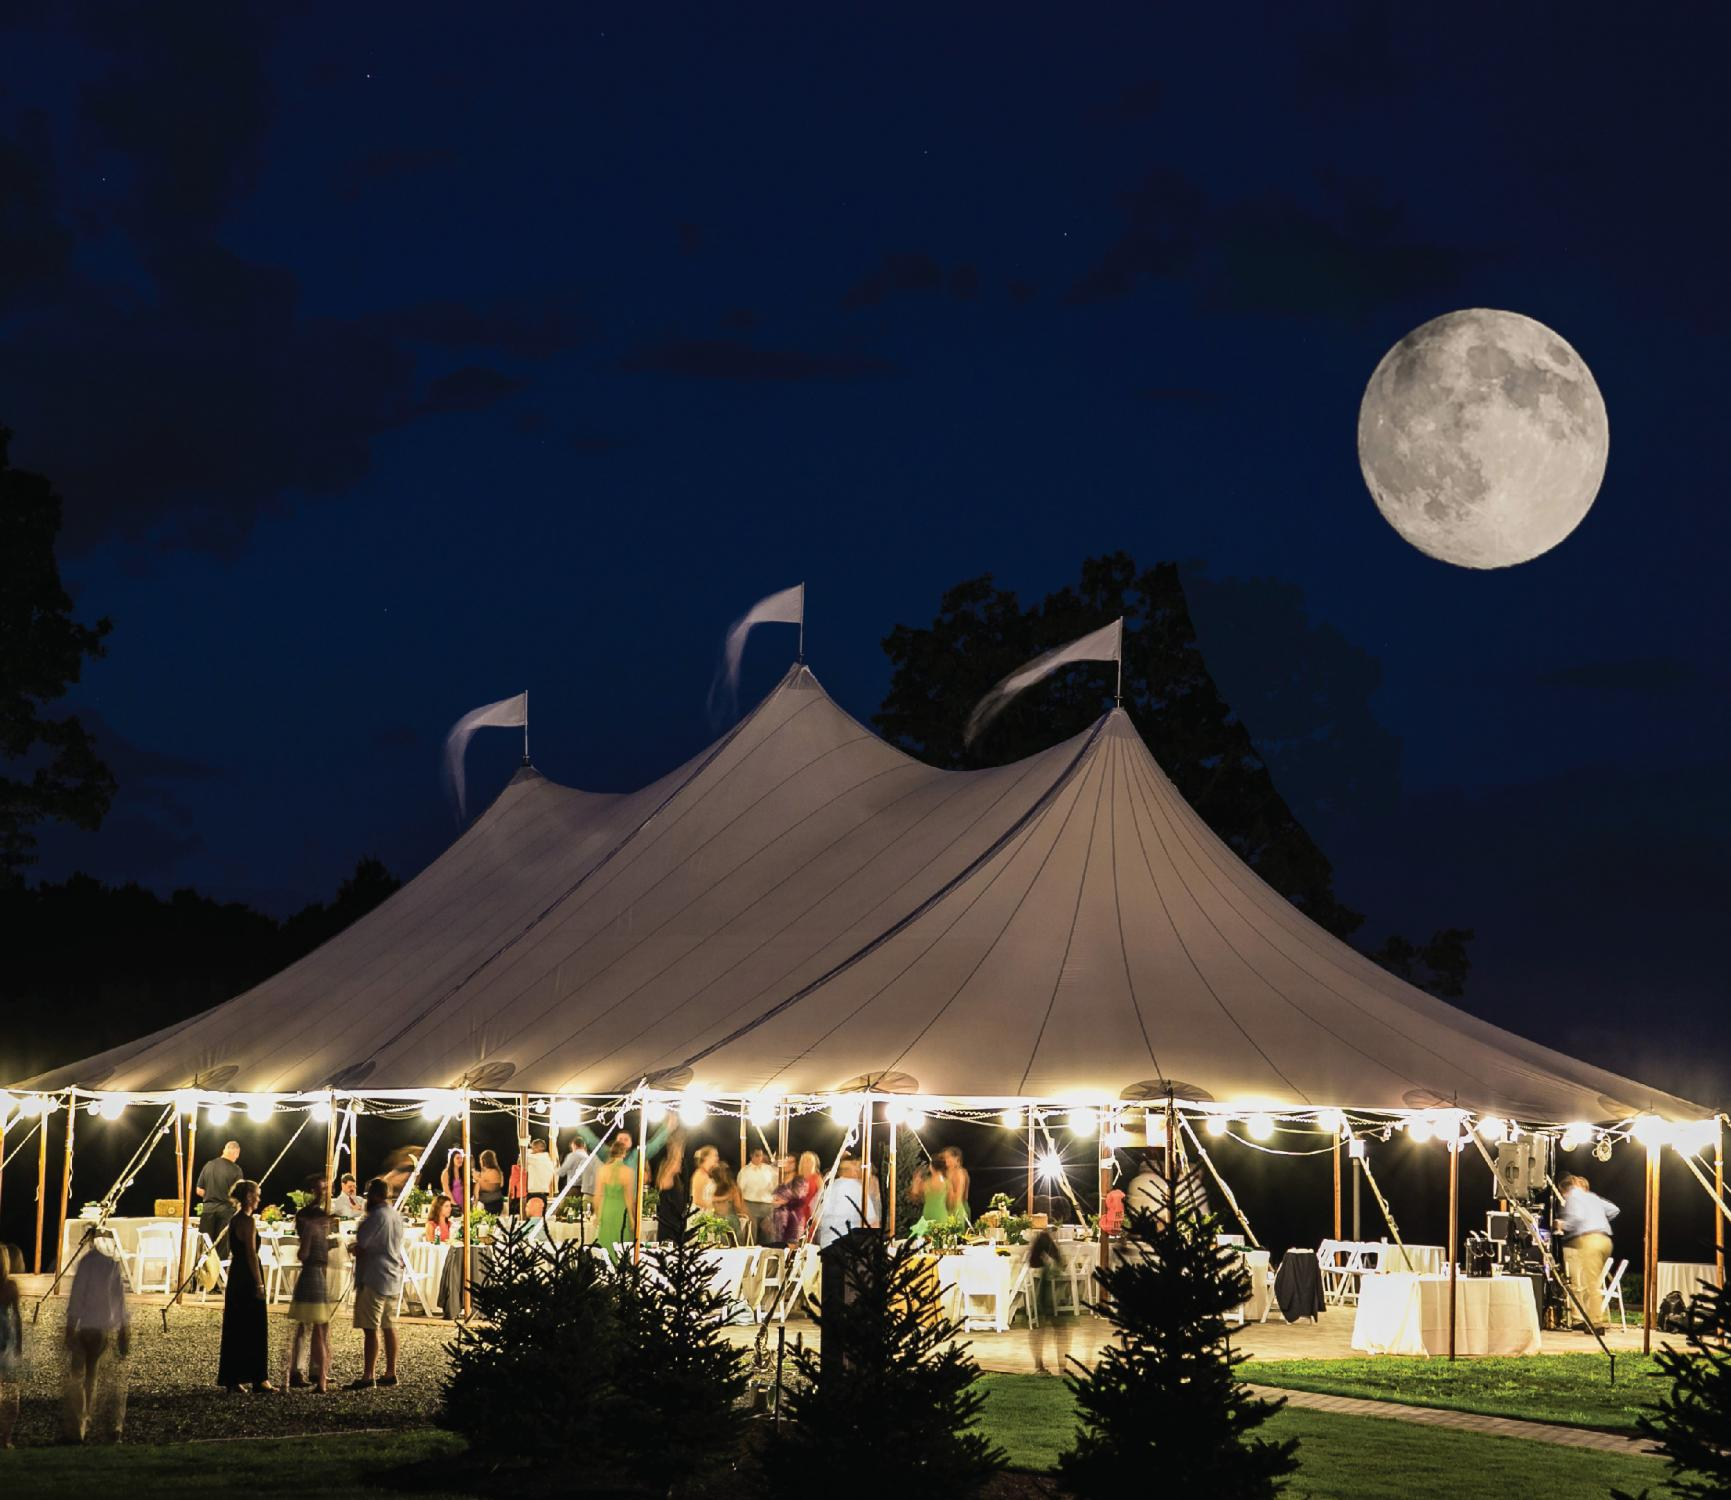 Stillwater tent at night with moon